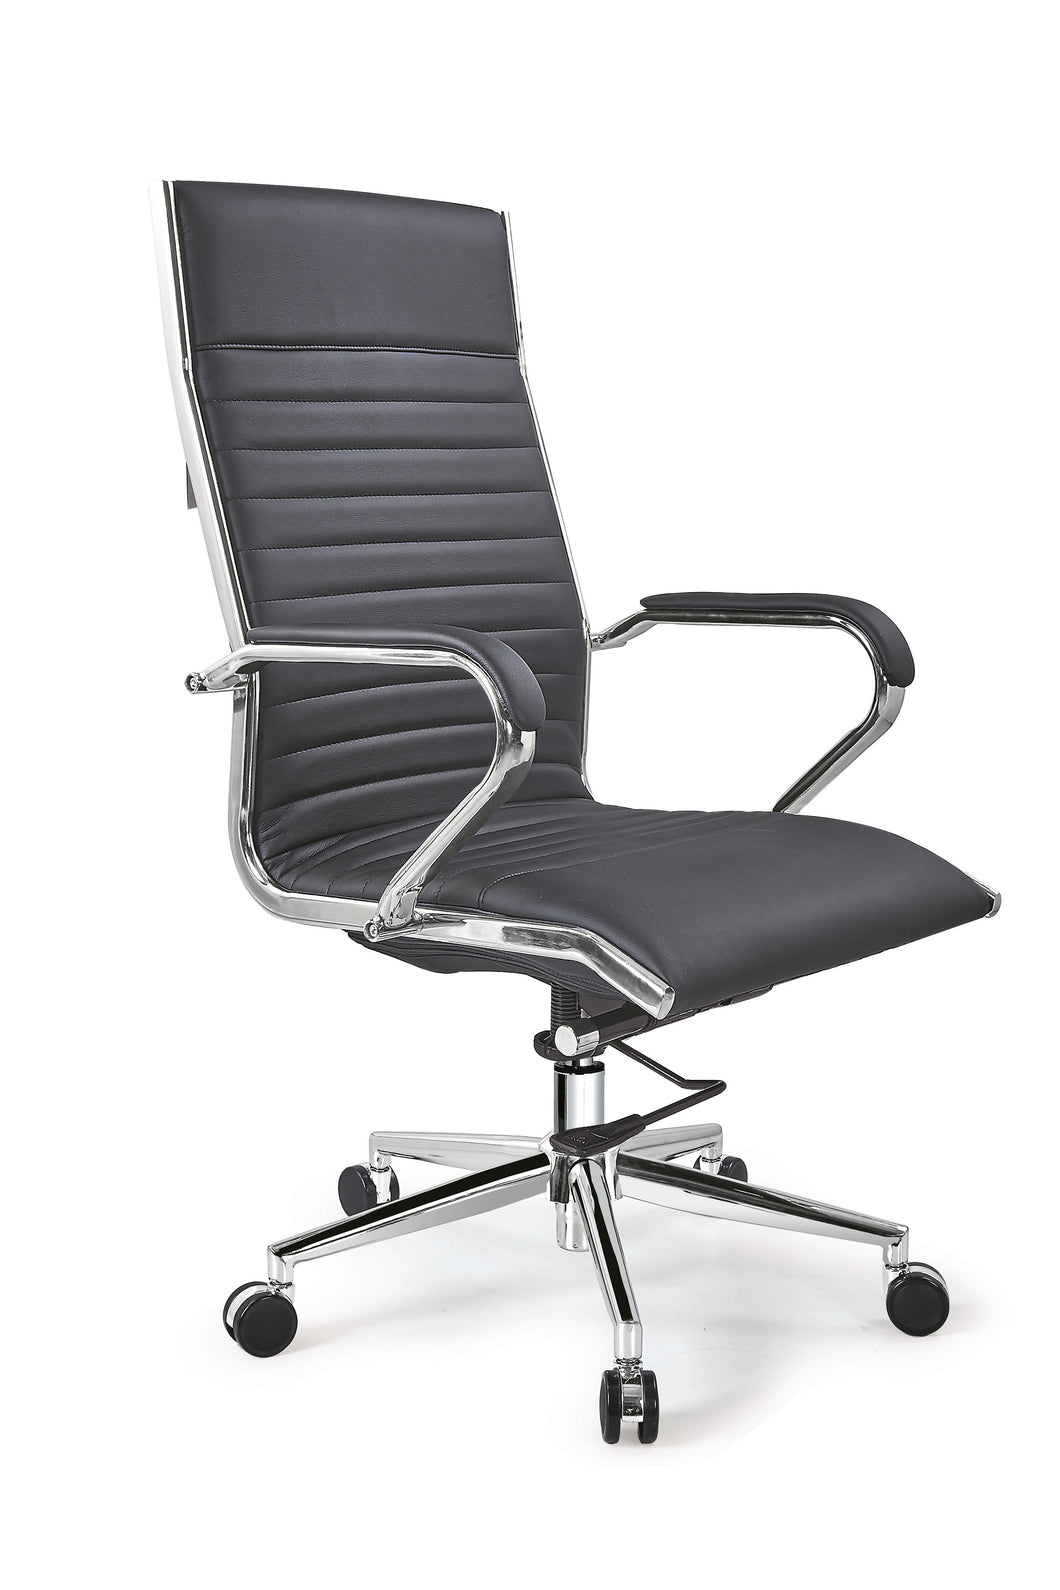 Lily High-Back Executive Leather Office, Reception Desk Chair AB-145B